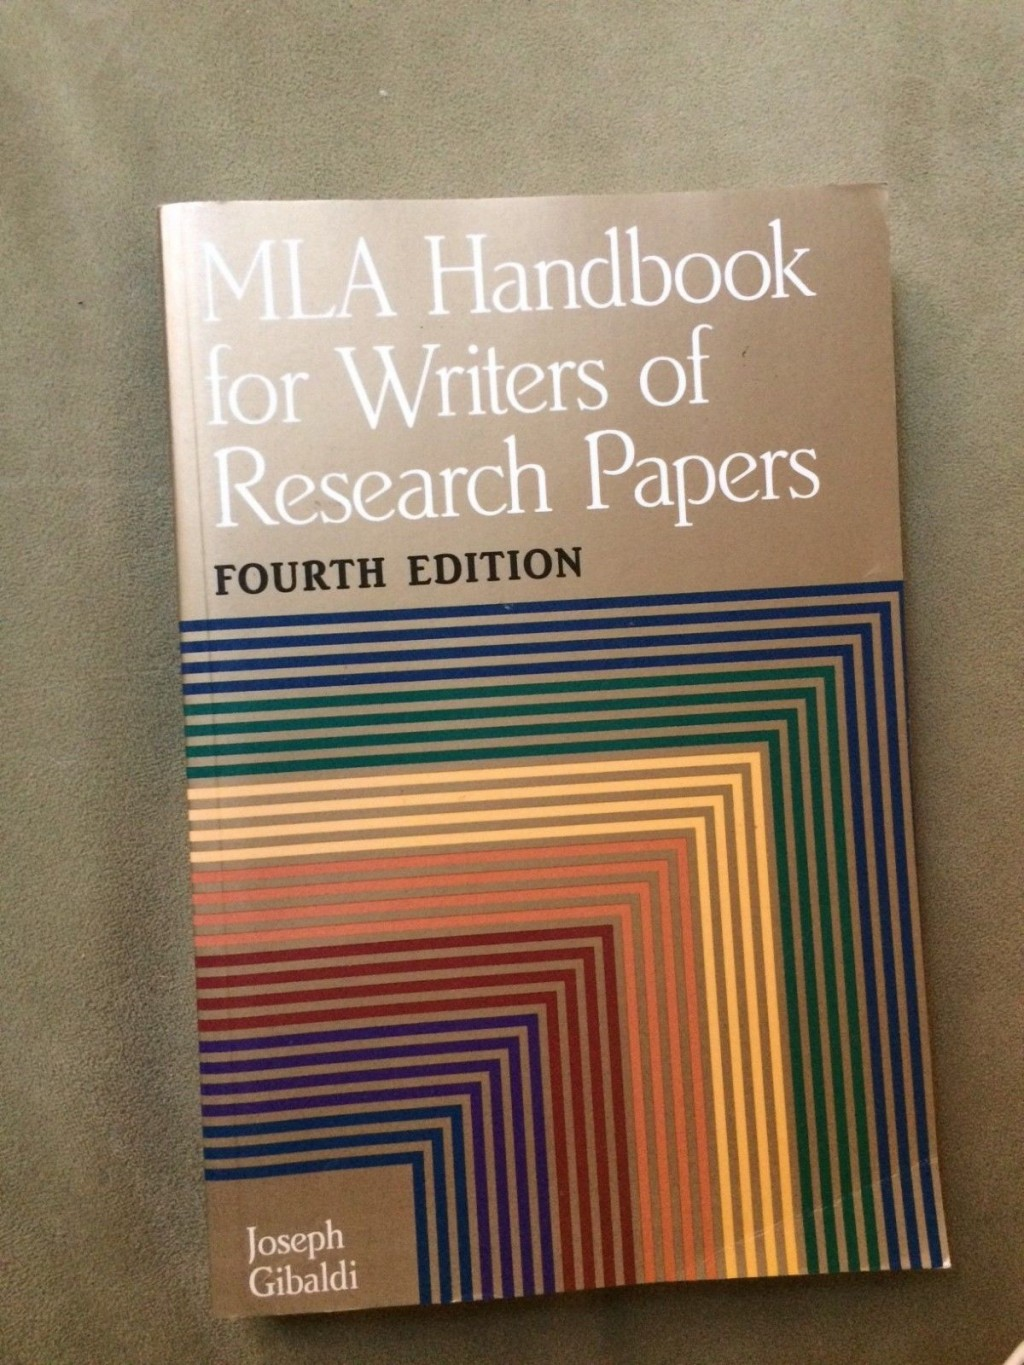 004 S L1600 Research Paper Mla Handbook For Writers Of Papers 8th Unique Edition Pdf Free Download Large